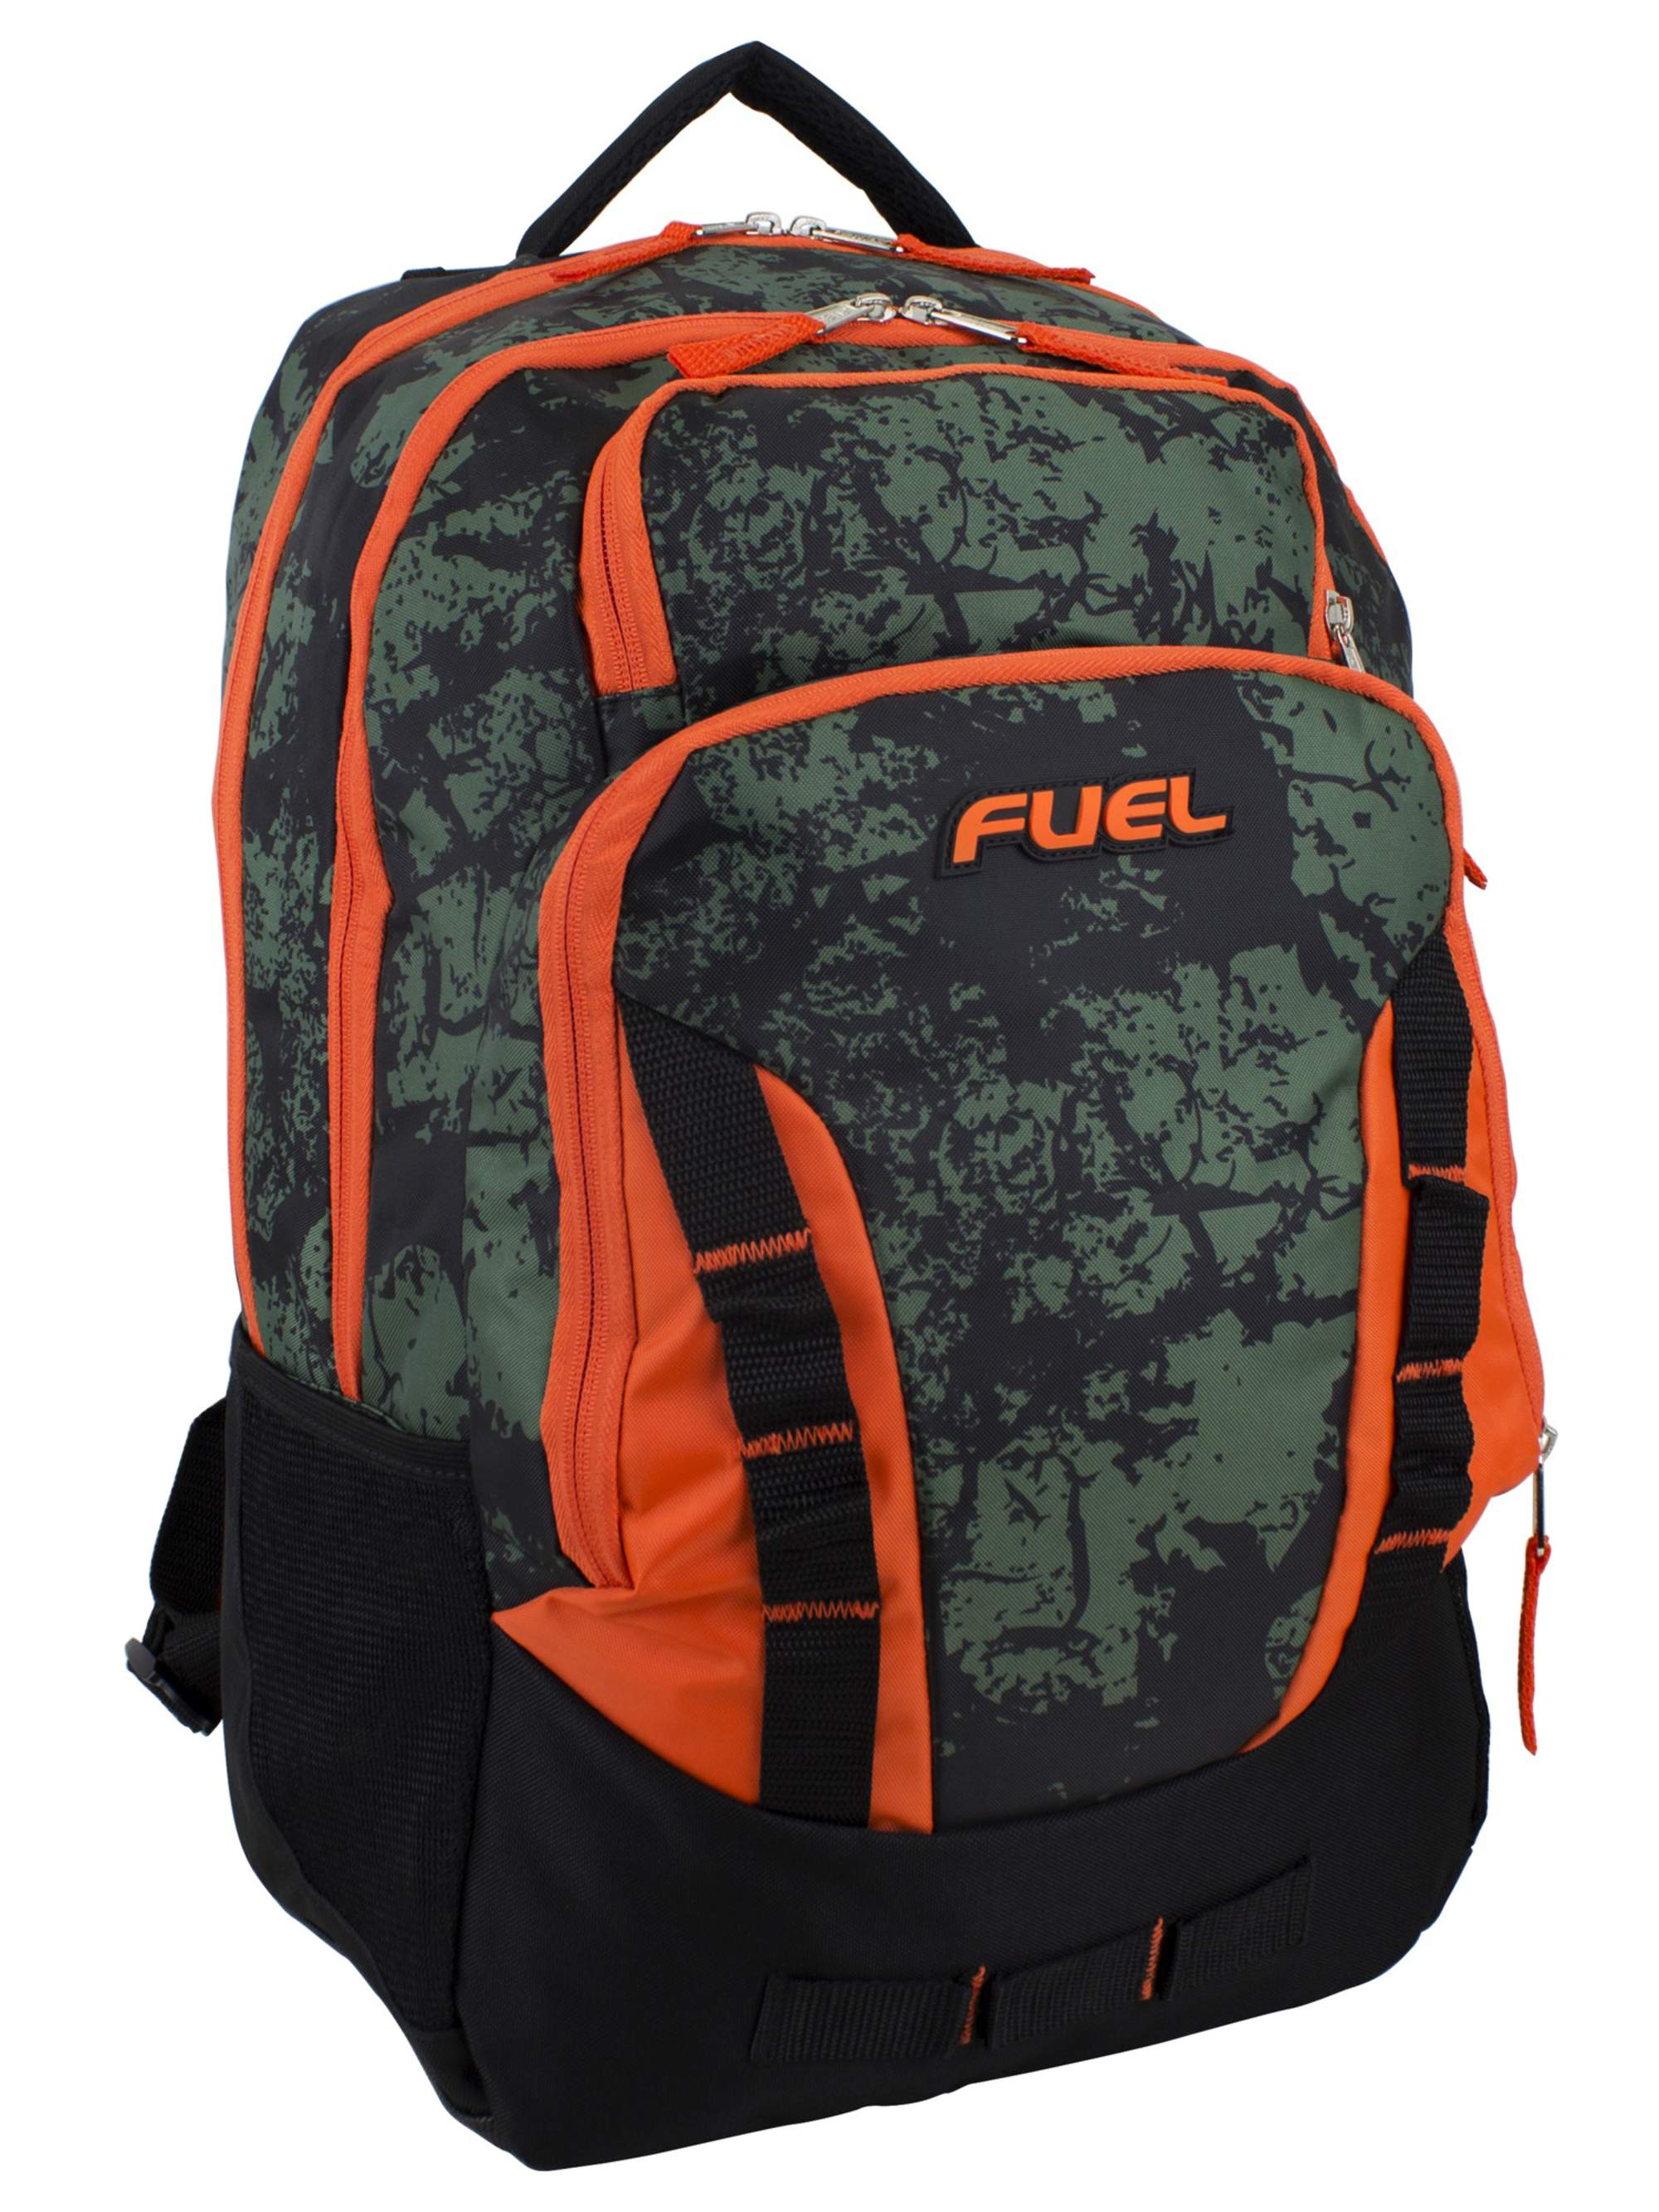 Fuel Escape Travel Backpack